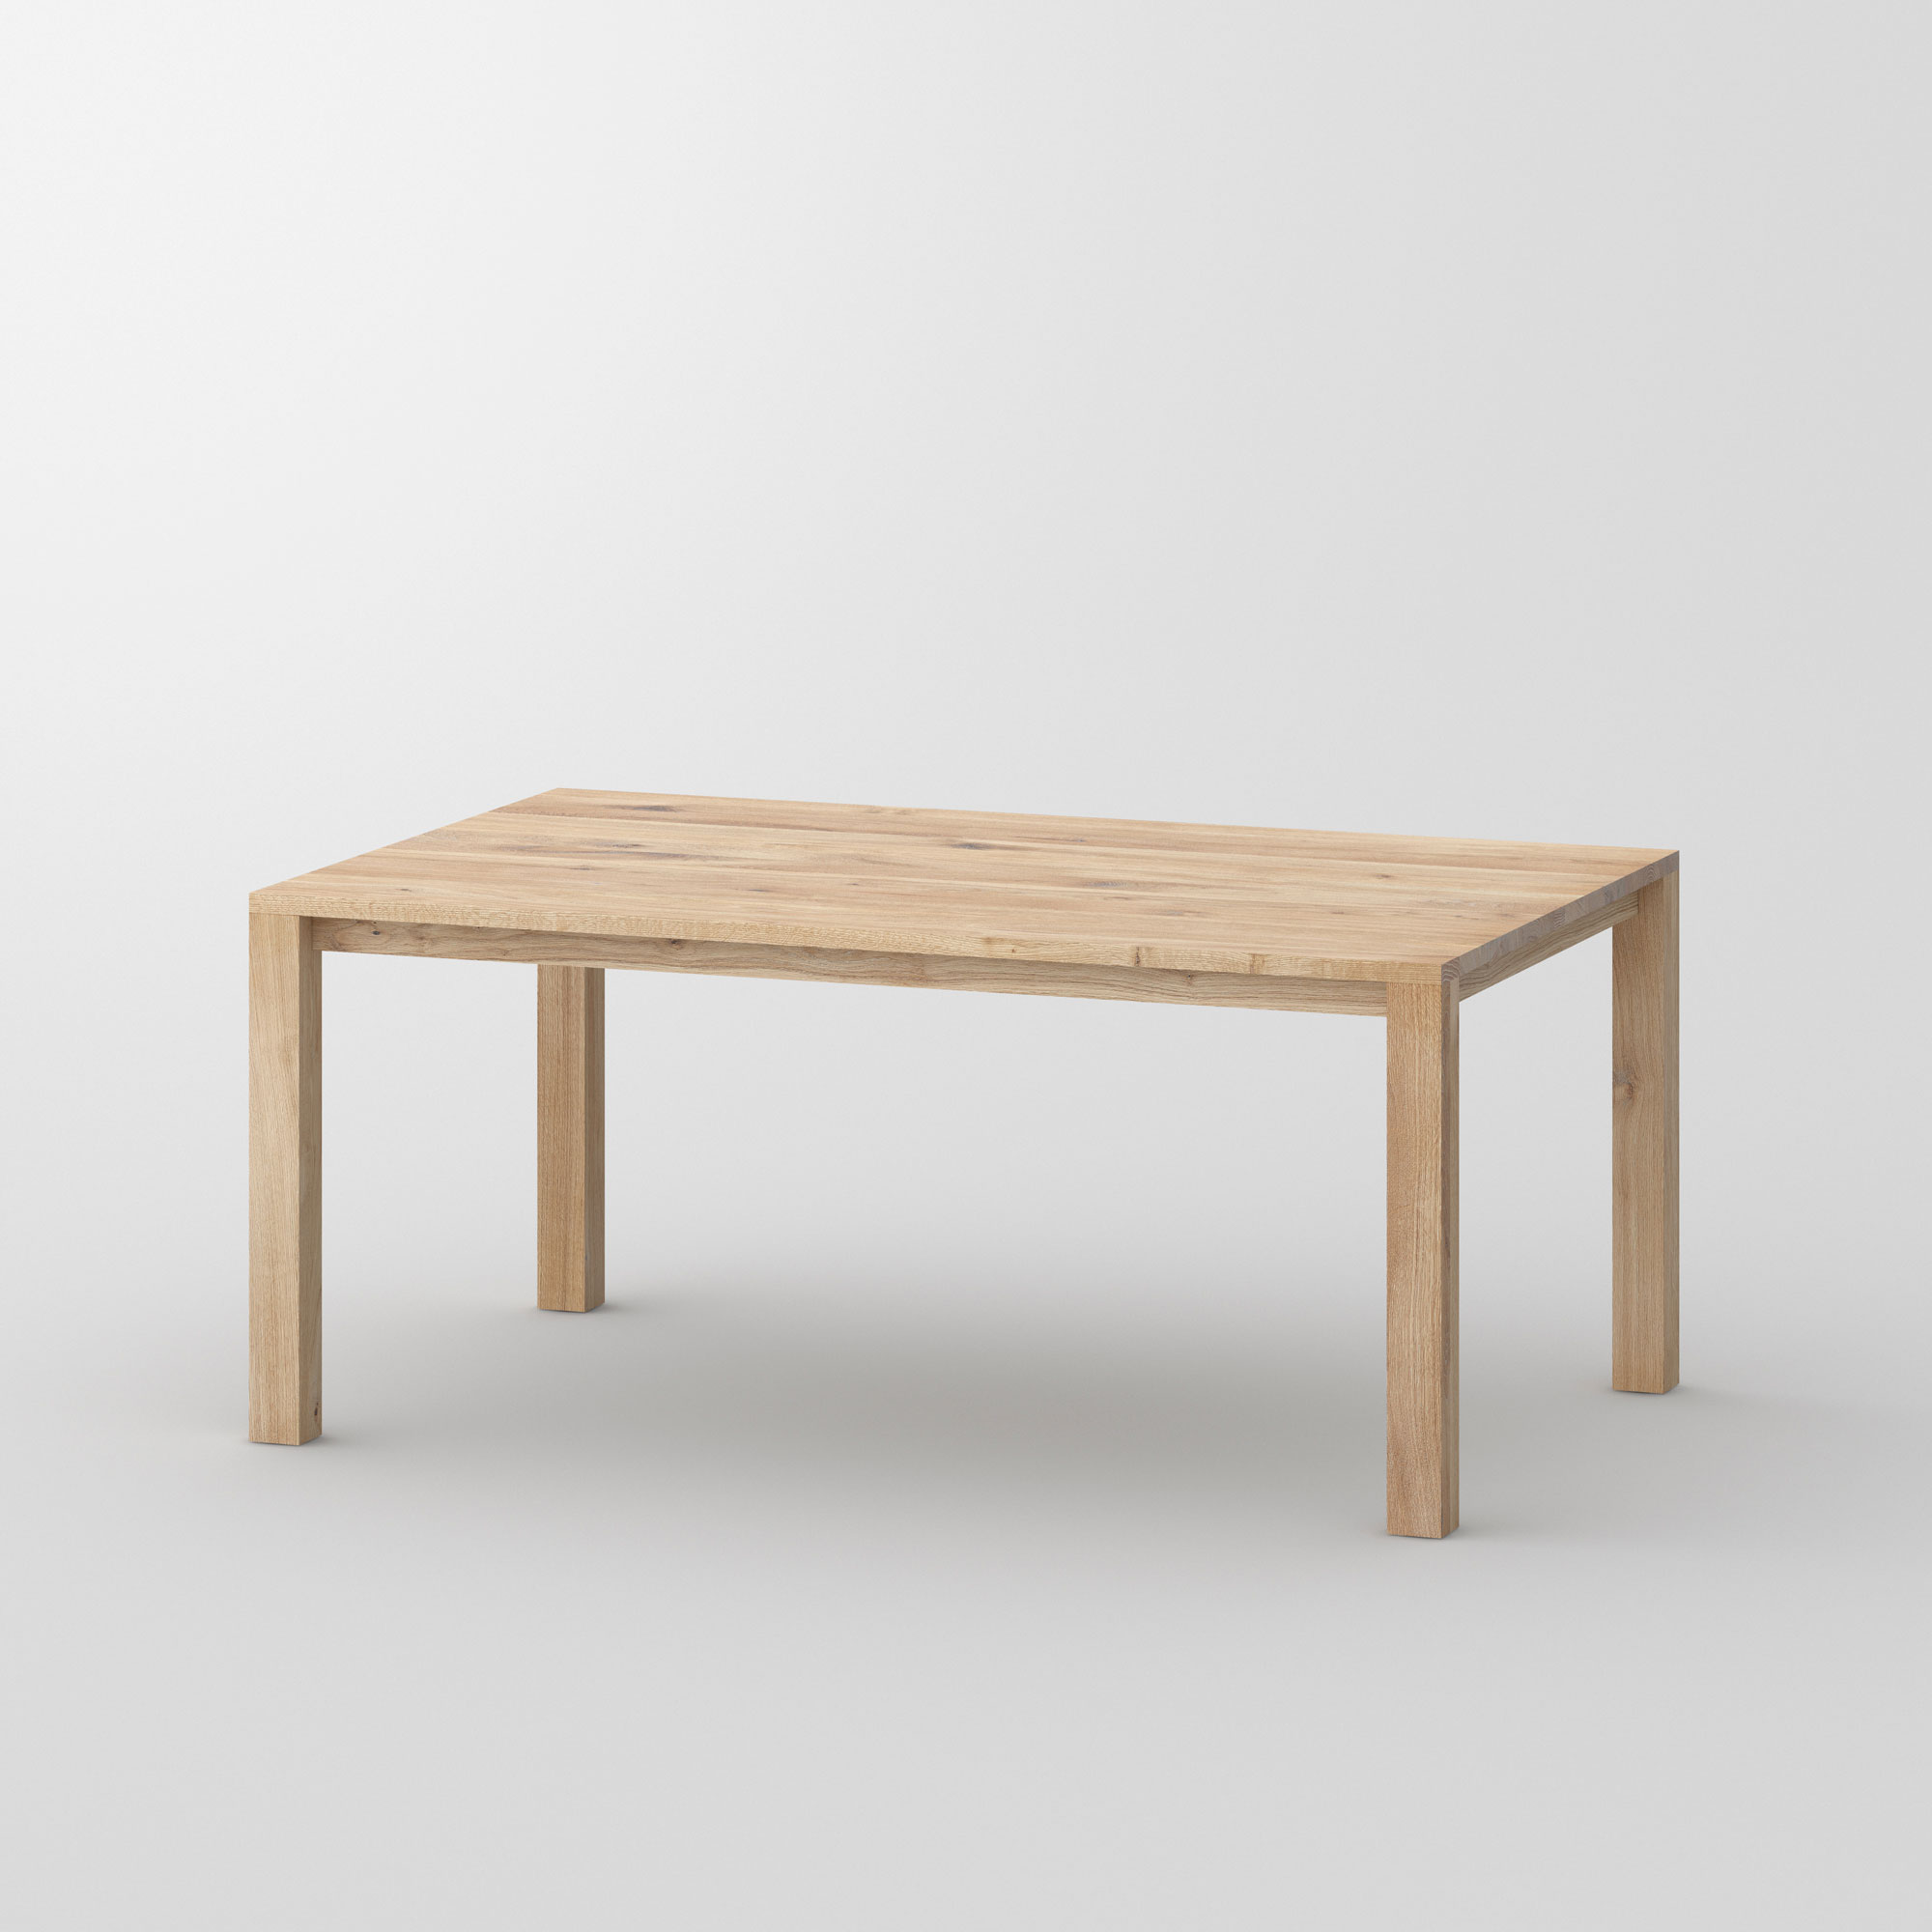 Variable Dining Table VARIUS BASIC cam1 custom made in solid wood by vitamin design